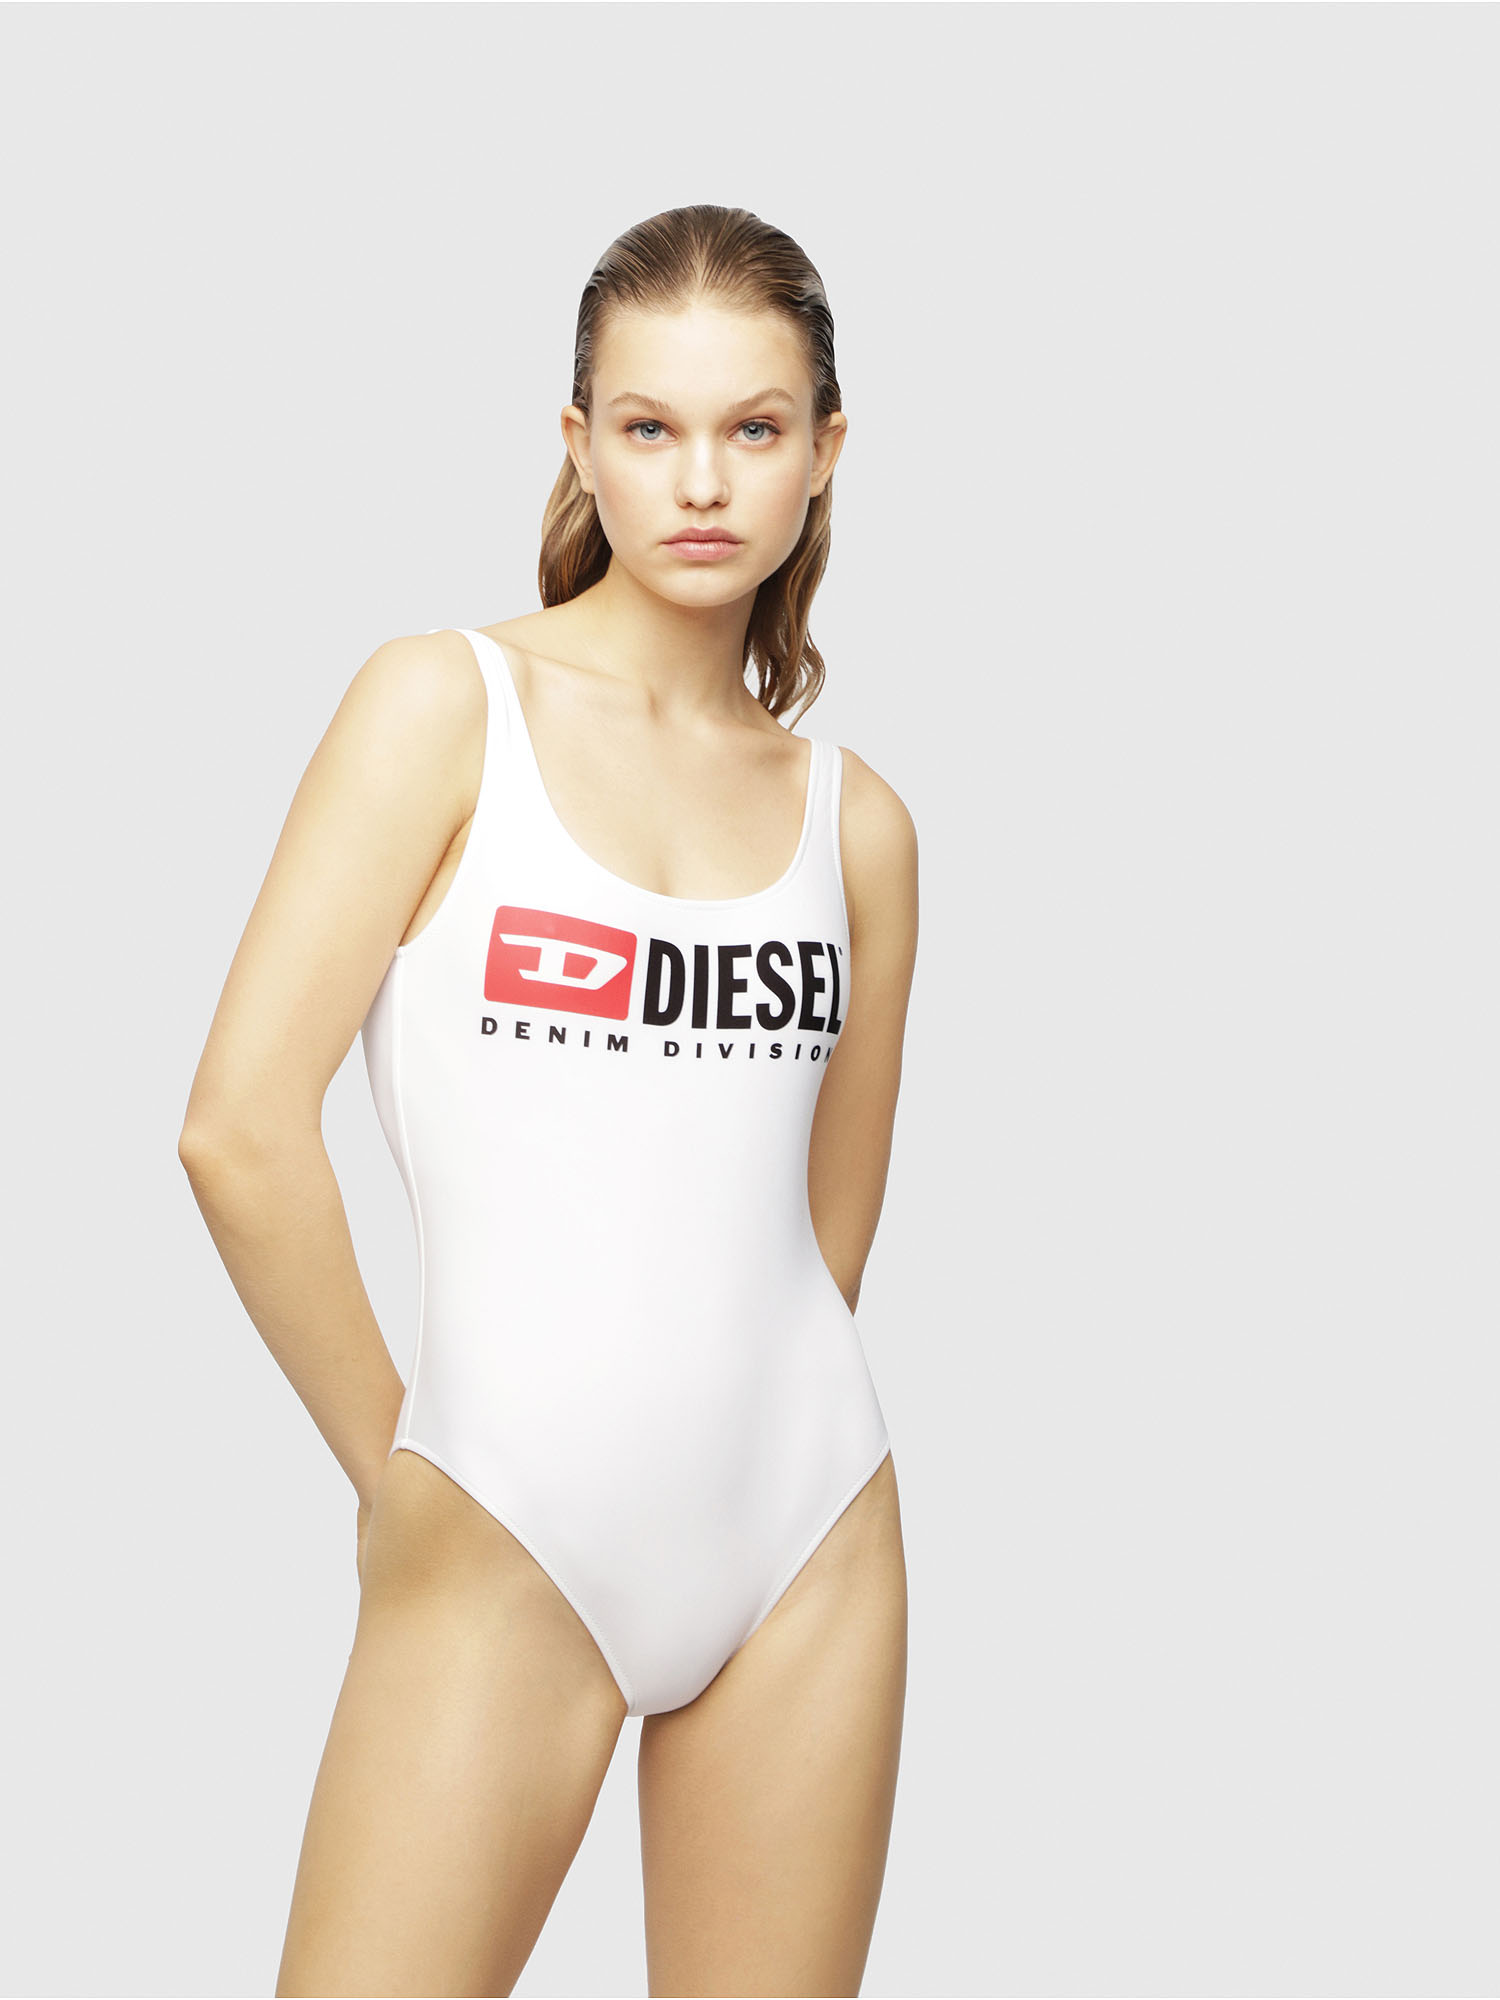 Diesel - BFSW-FLAMNEW,  - Swimsuits - Image 1